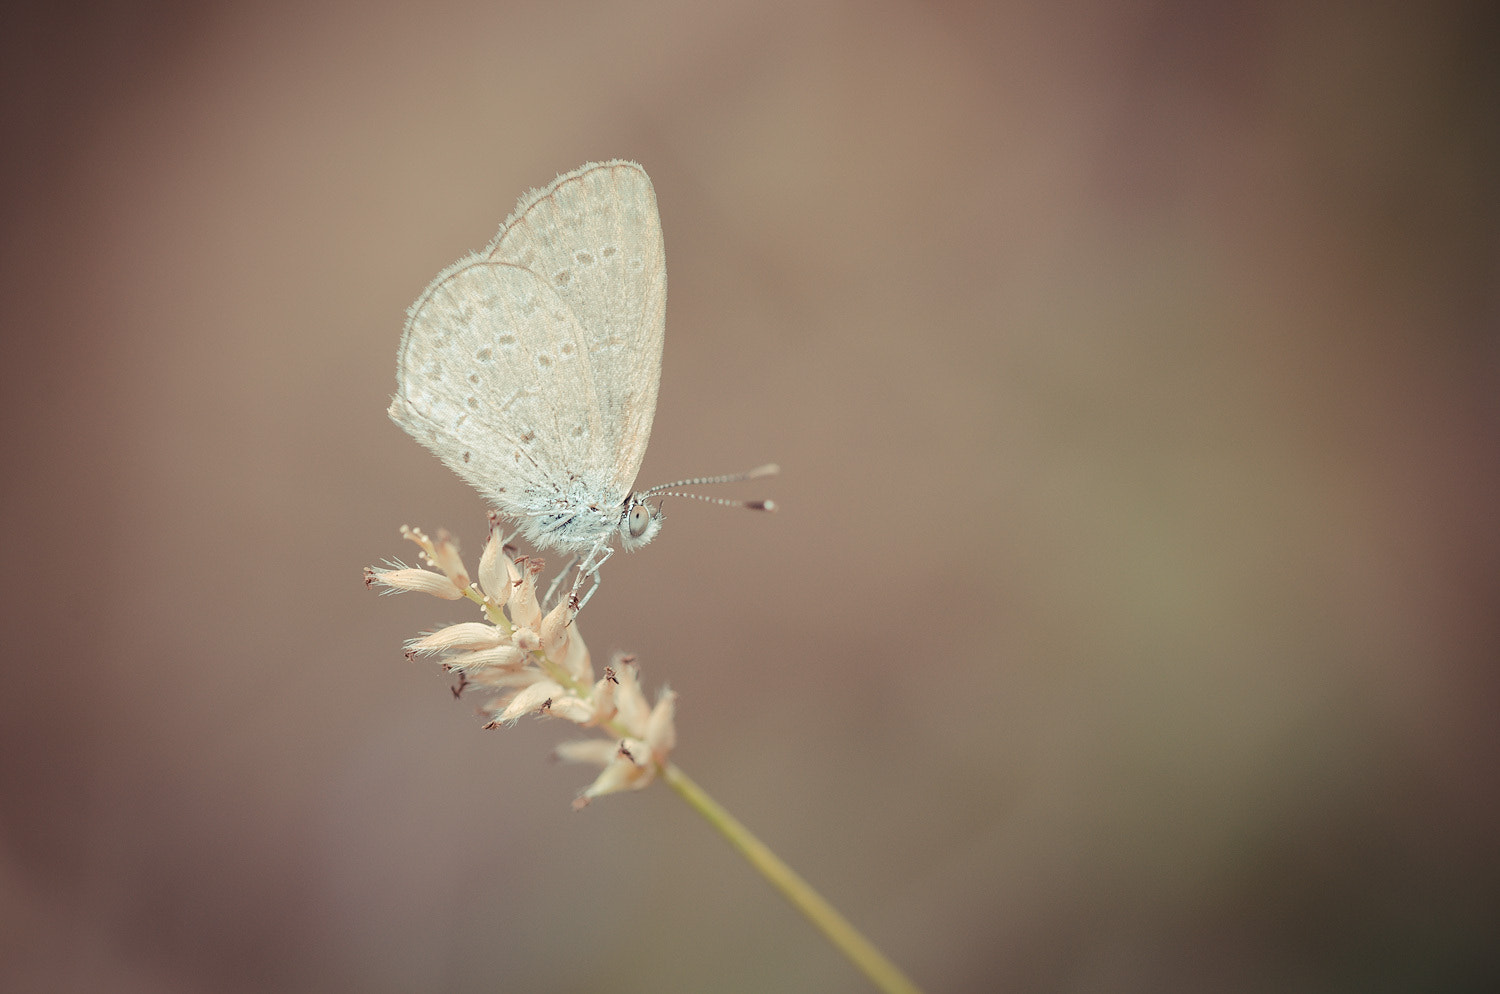 Photograph Butterfly by Peerasith Chaisanit on 500px